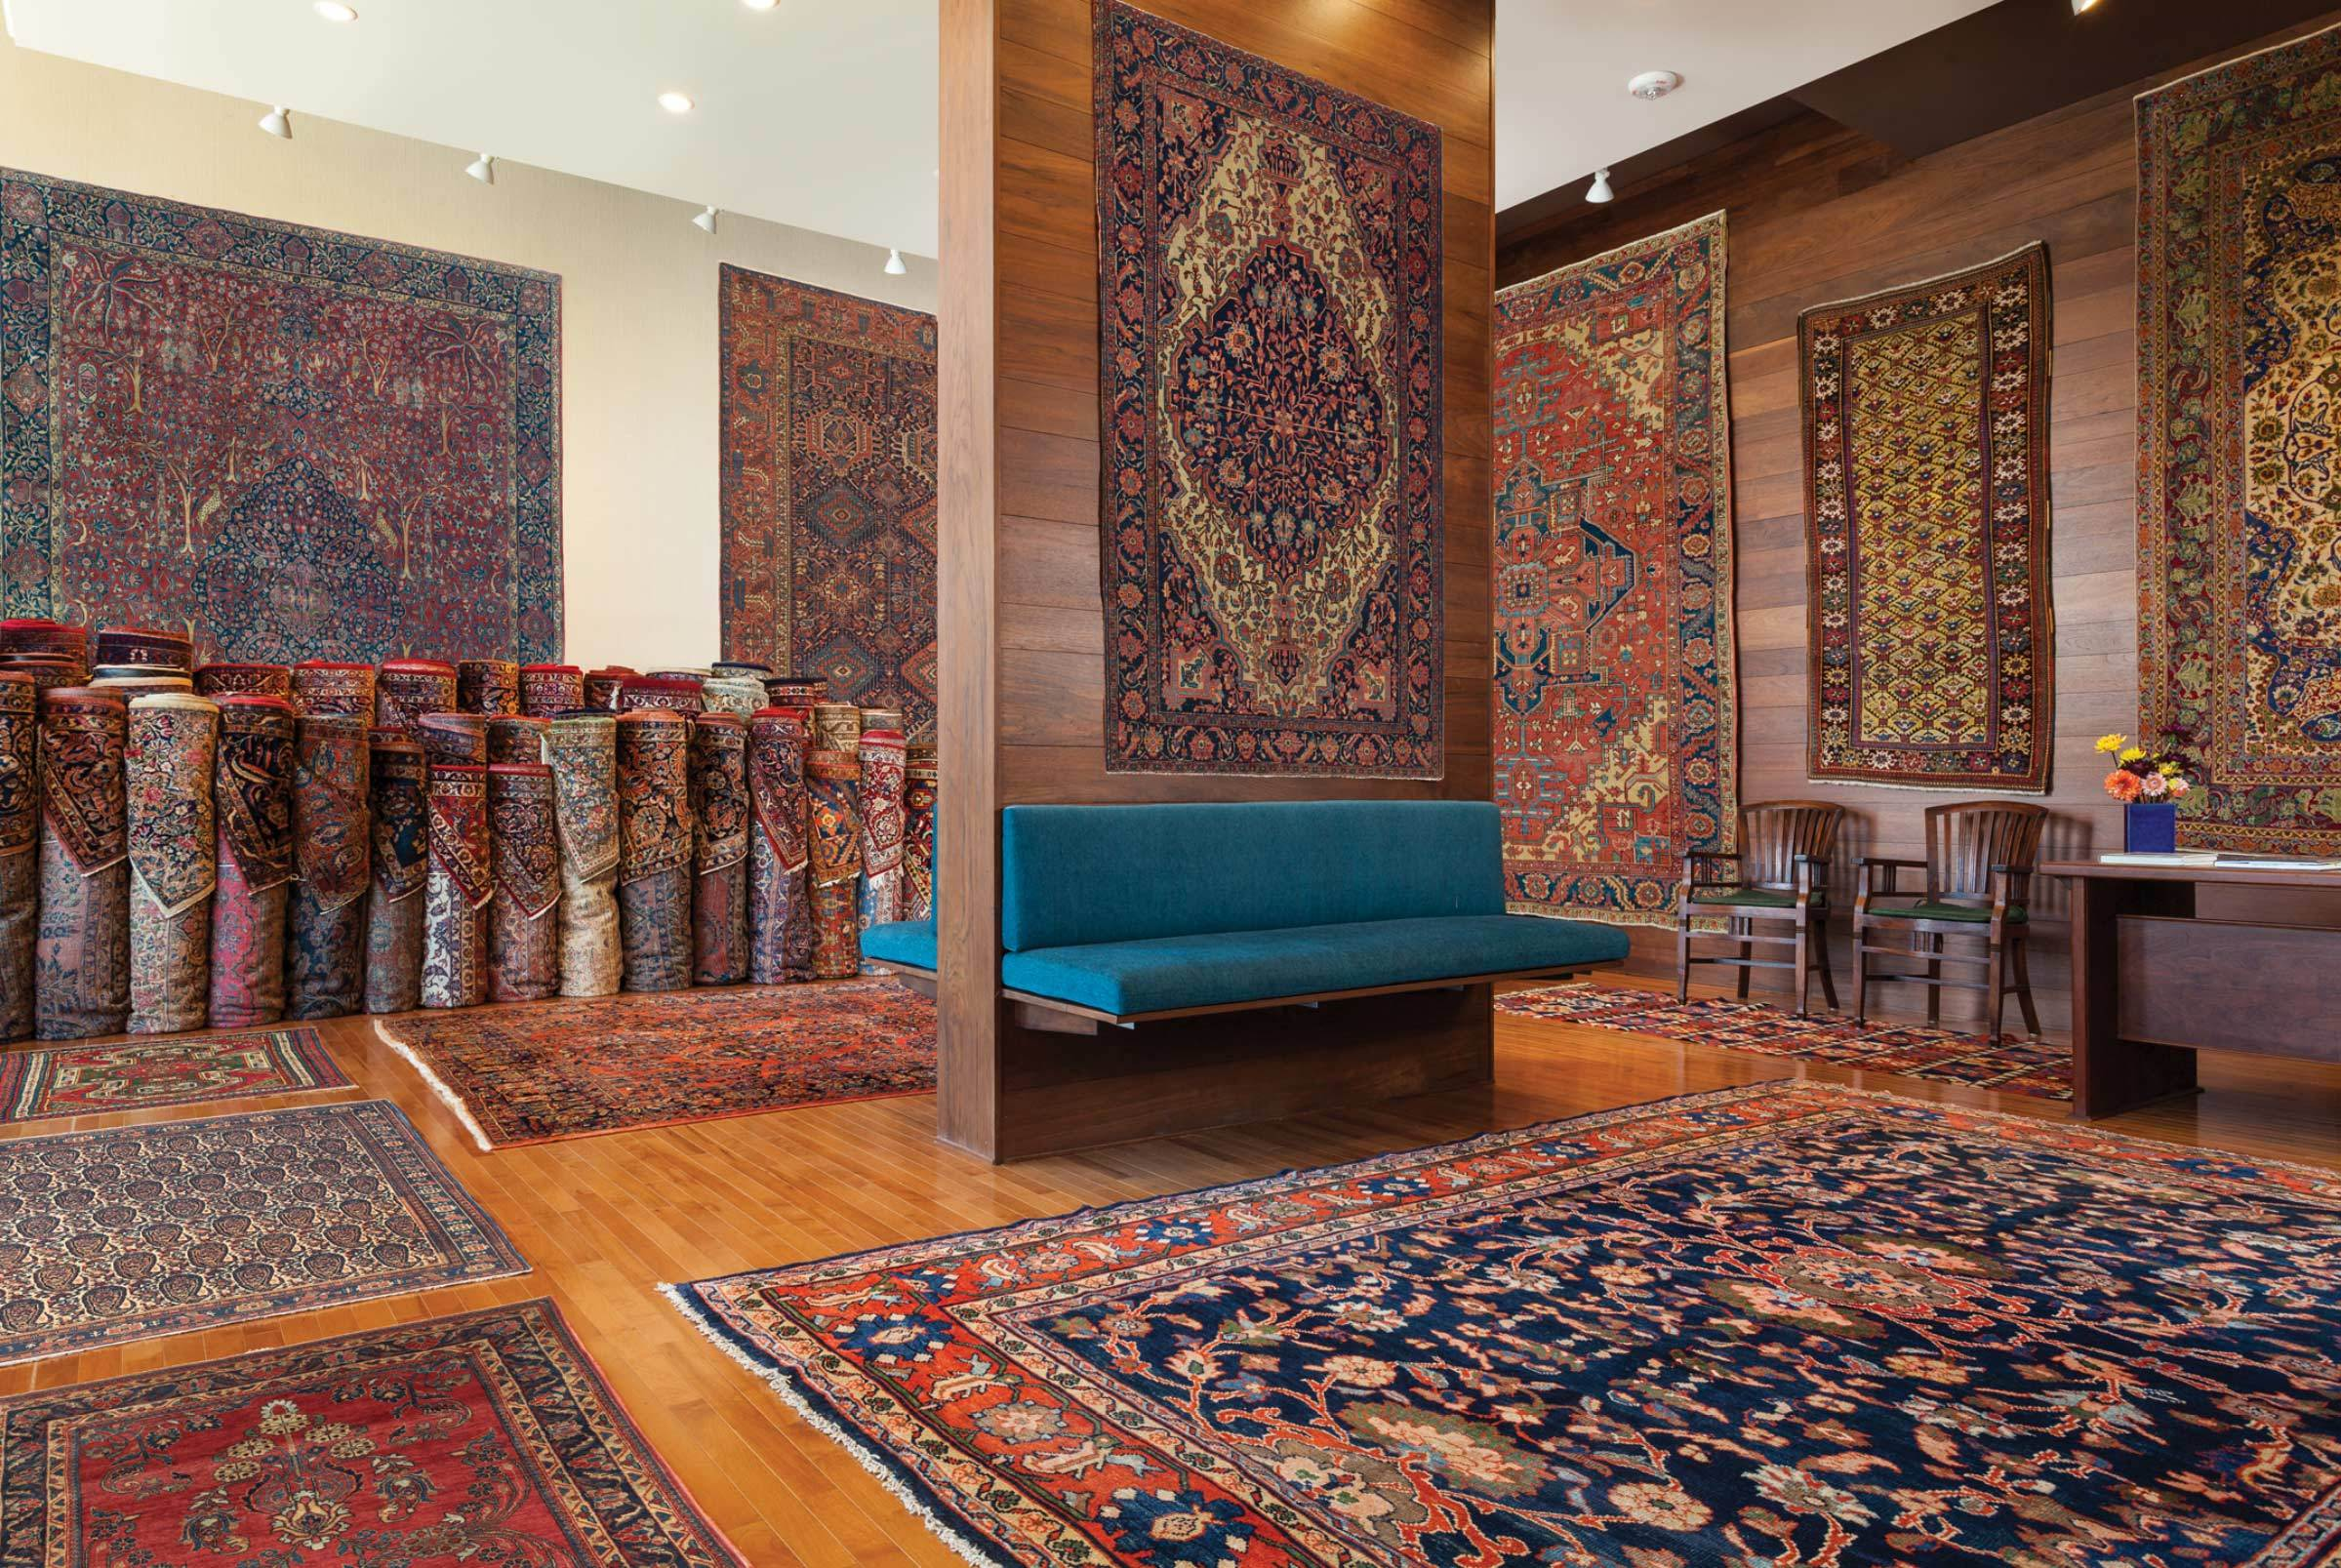 Wonderful Claremont Rug Company Announces Opening Of New Showroom Pairing Vintage Rugs  With A Contemporary Setting | Business Wire